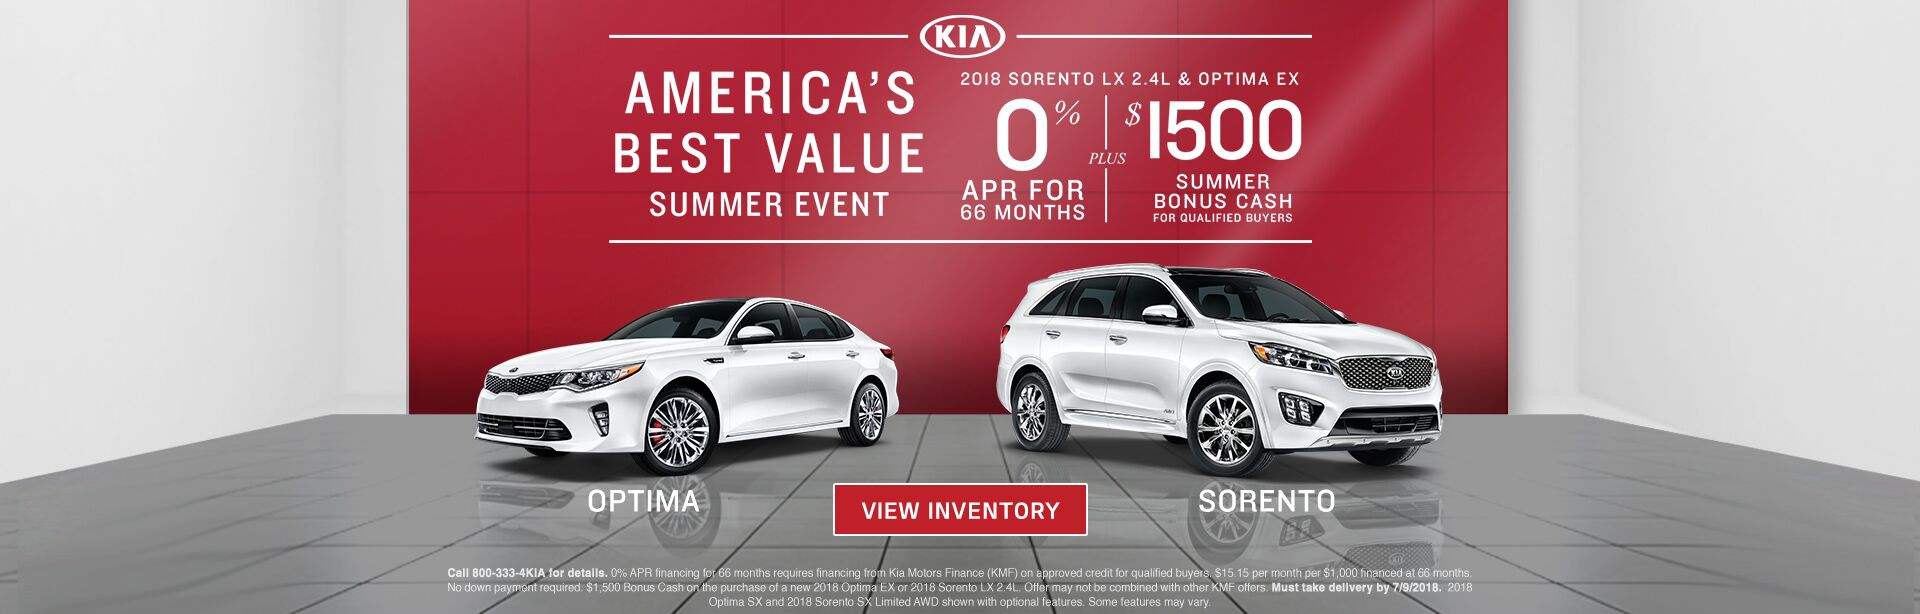 America's Best Value Summer Event at Moritz Kia Alliance